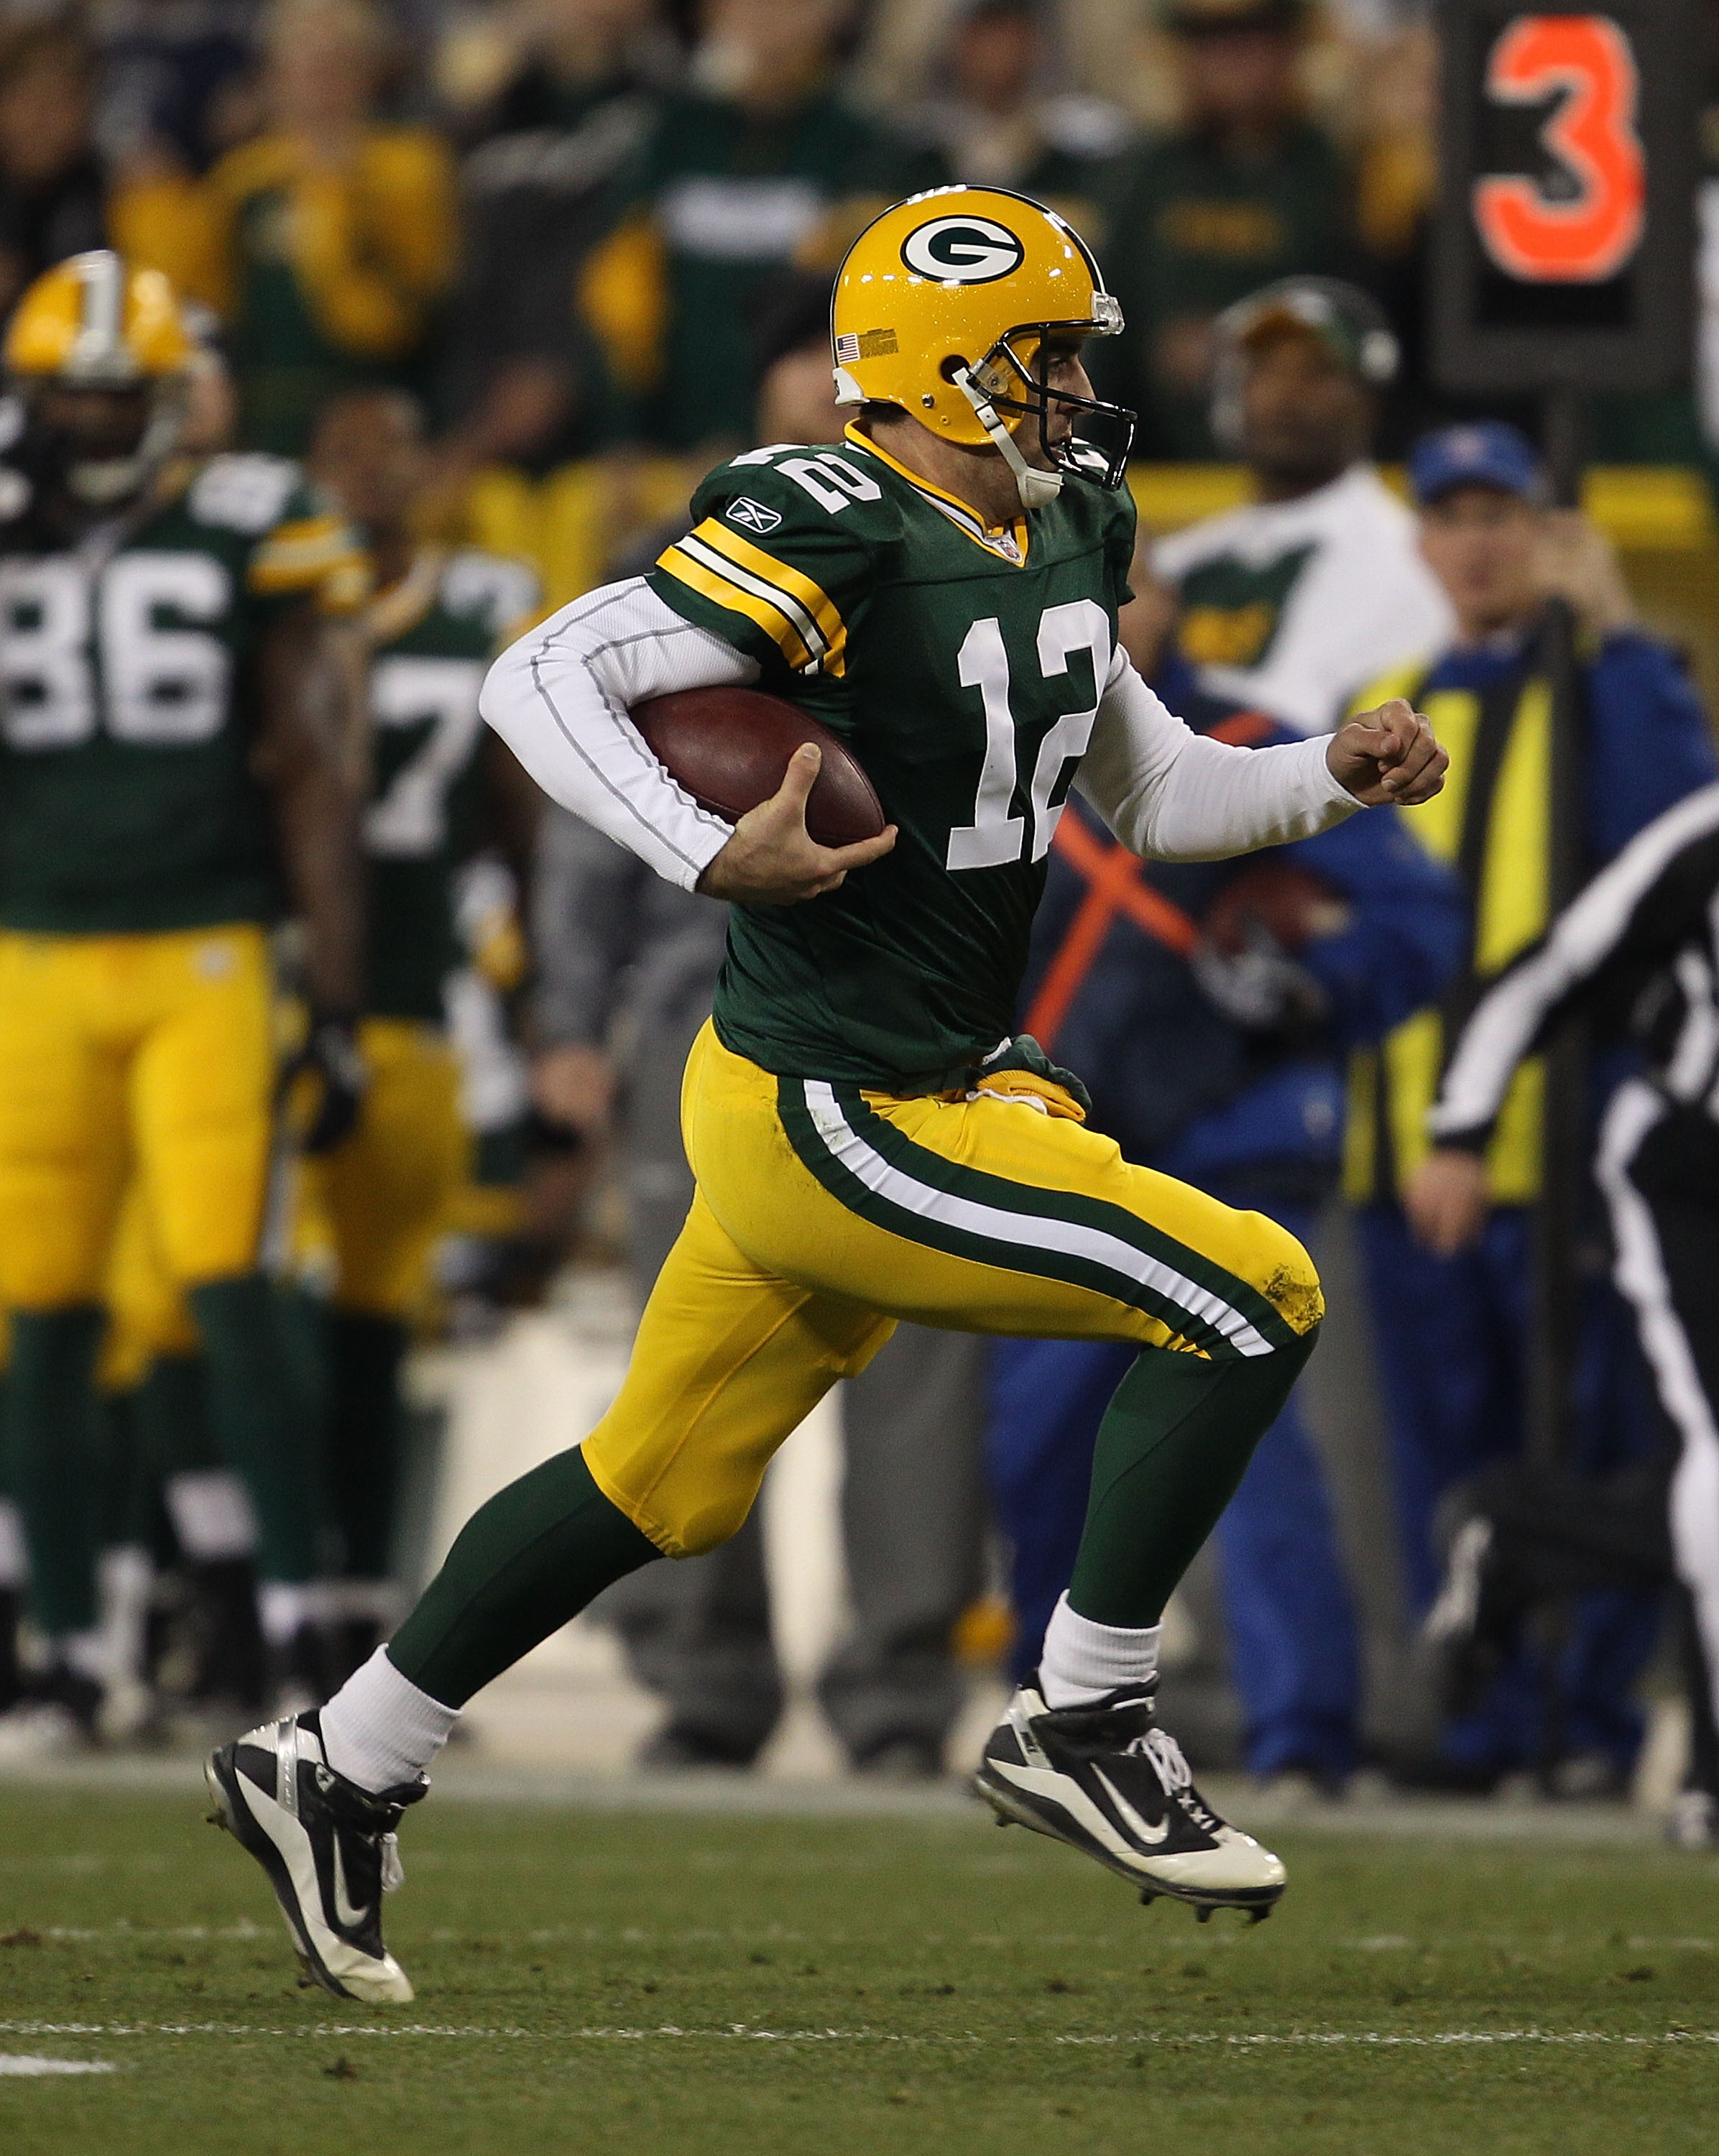 GREEN BAY, WI - NOVEMBER 07: Aaron Rodgers #12 of the Green Bay Packers runs for a first down against the Dallas Cowboys at Lambeau Field on November 7, 2010 in Green Bay, Wisconsin. The Packers defeated the Cowboys 45-7. (Photo by Jonathan Daniel/Getty I